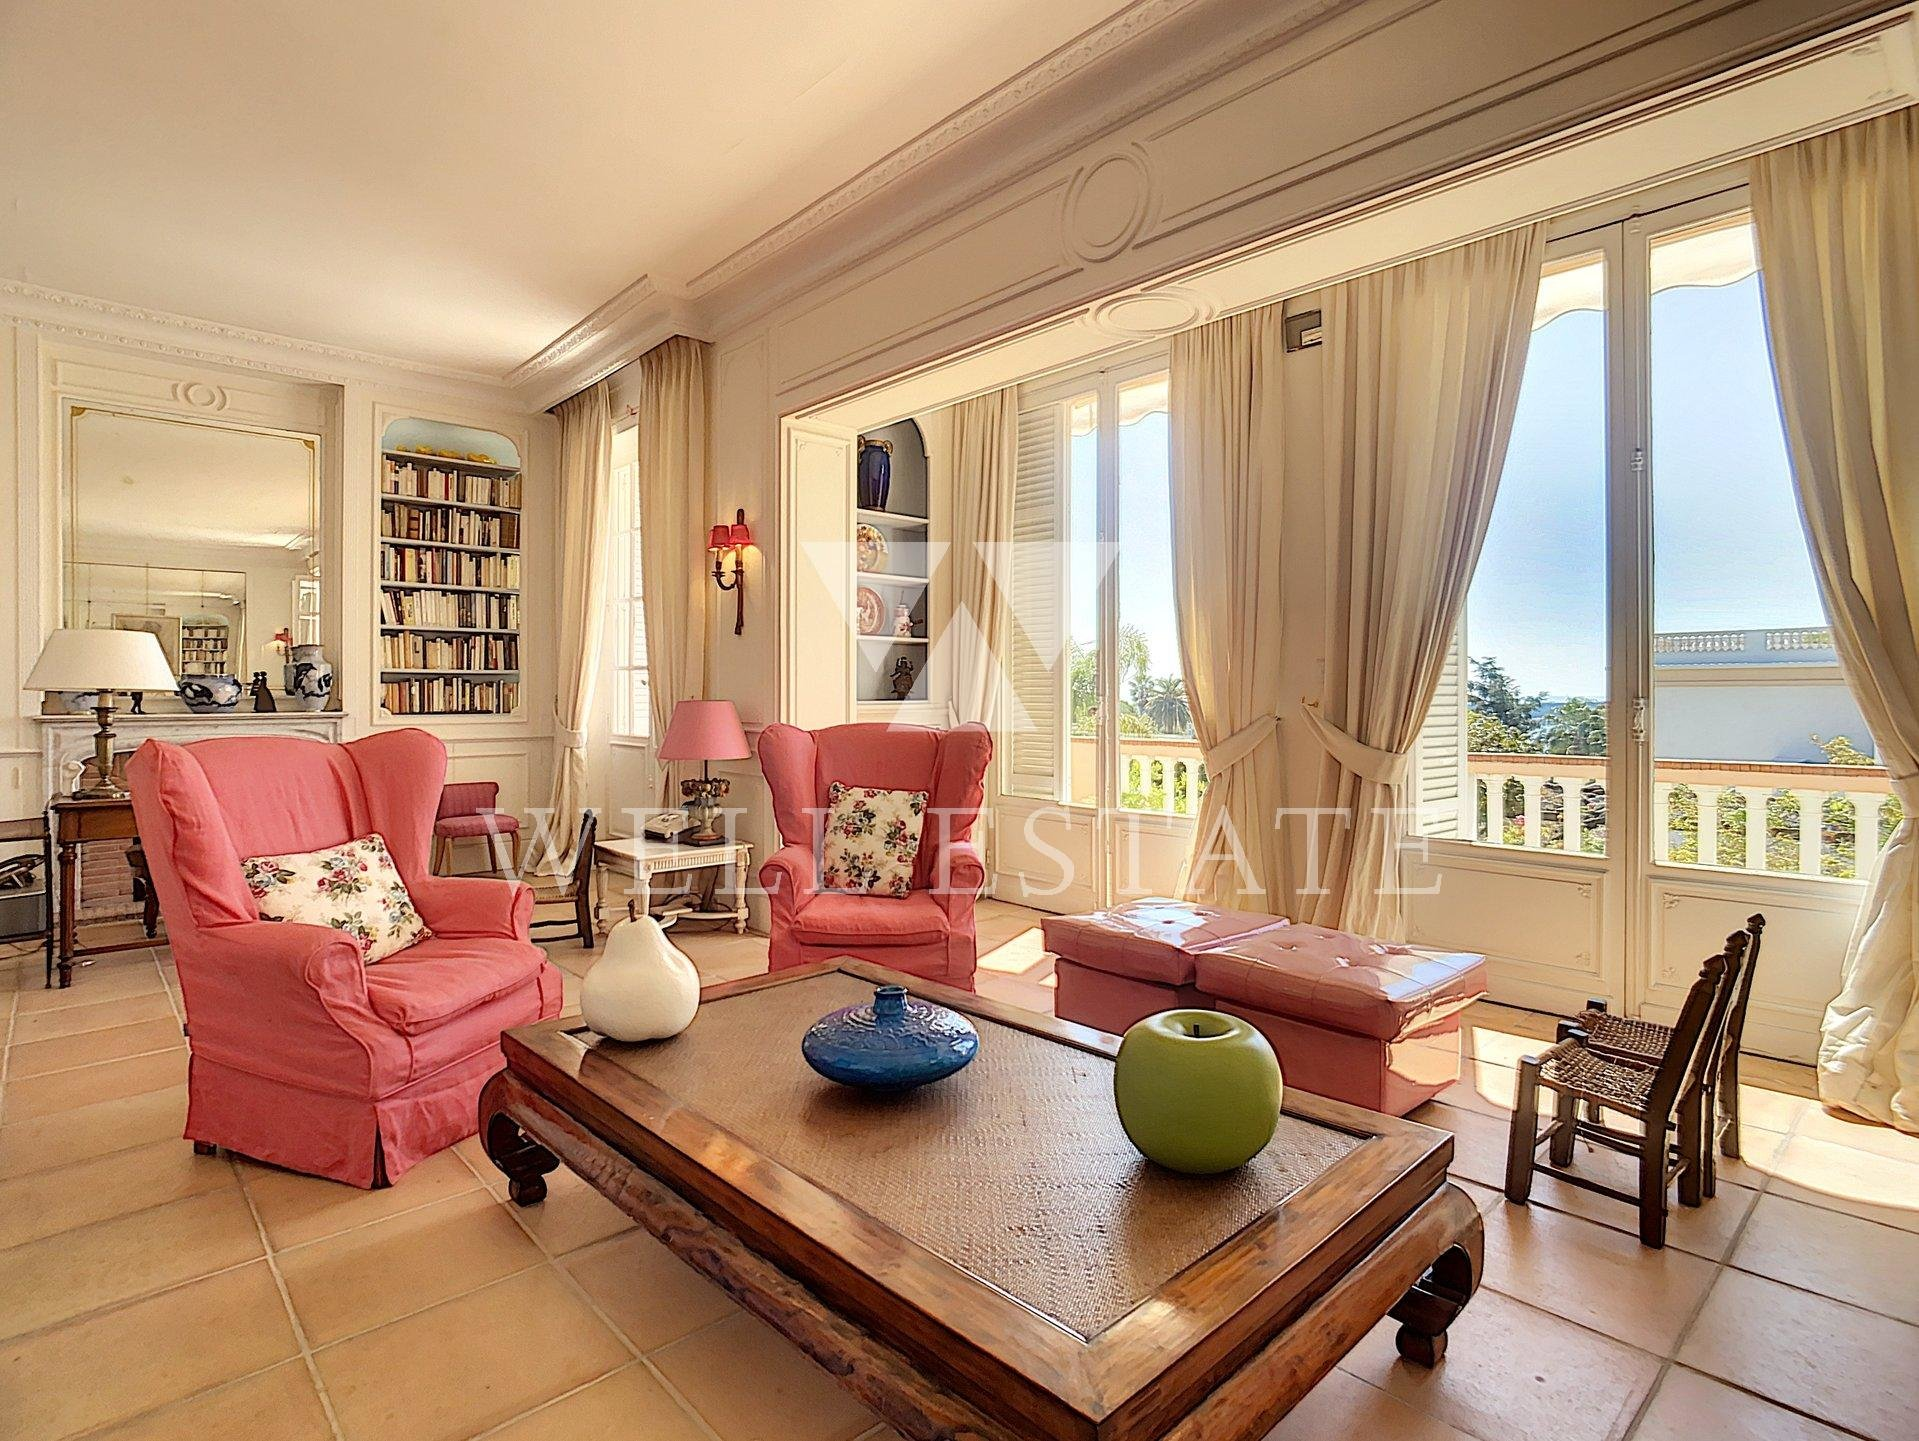 CANNES CALIFORNIE VILLA 6 BEDROOMS SEA VIEW SWIMMING POOL